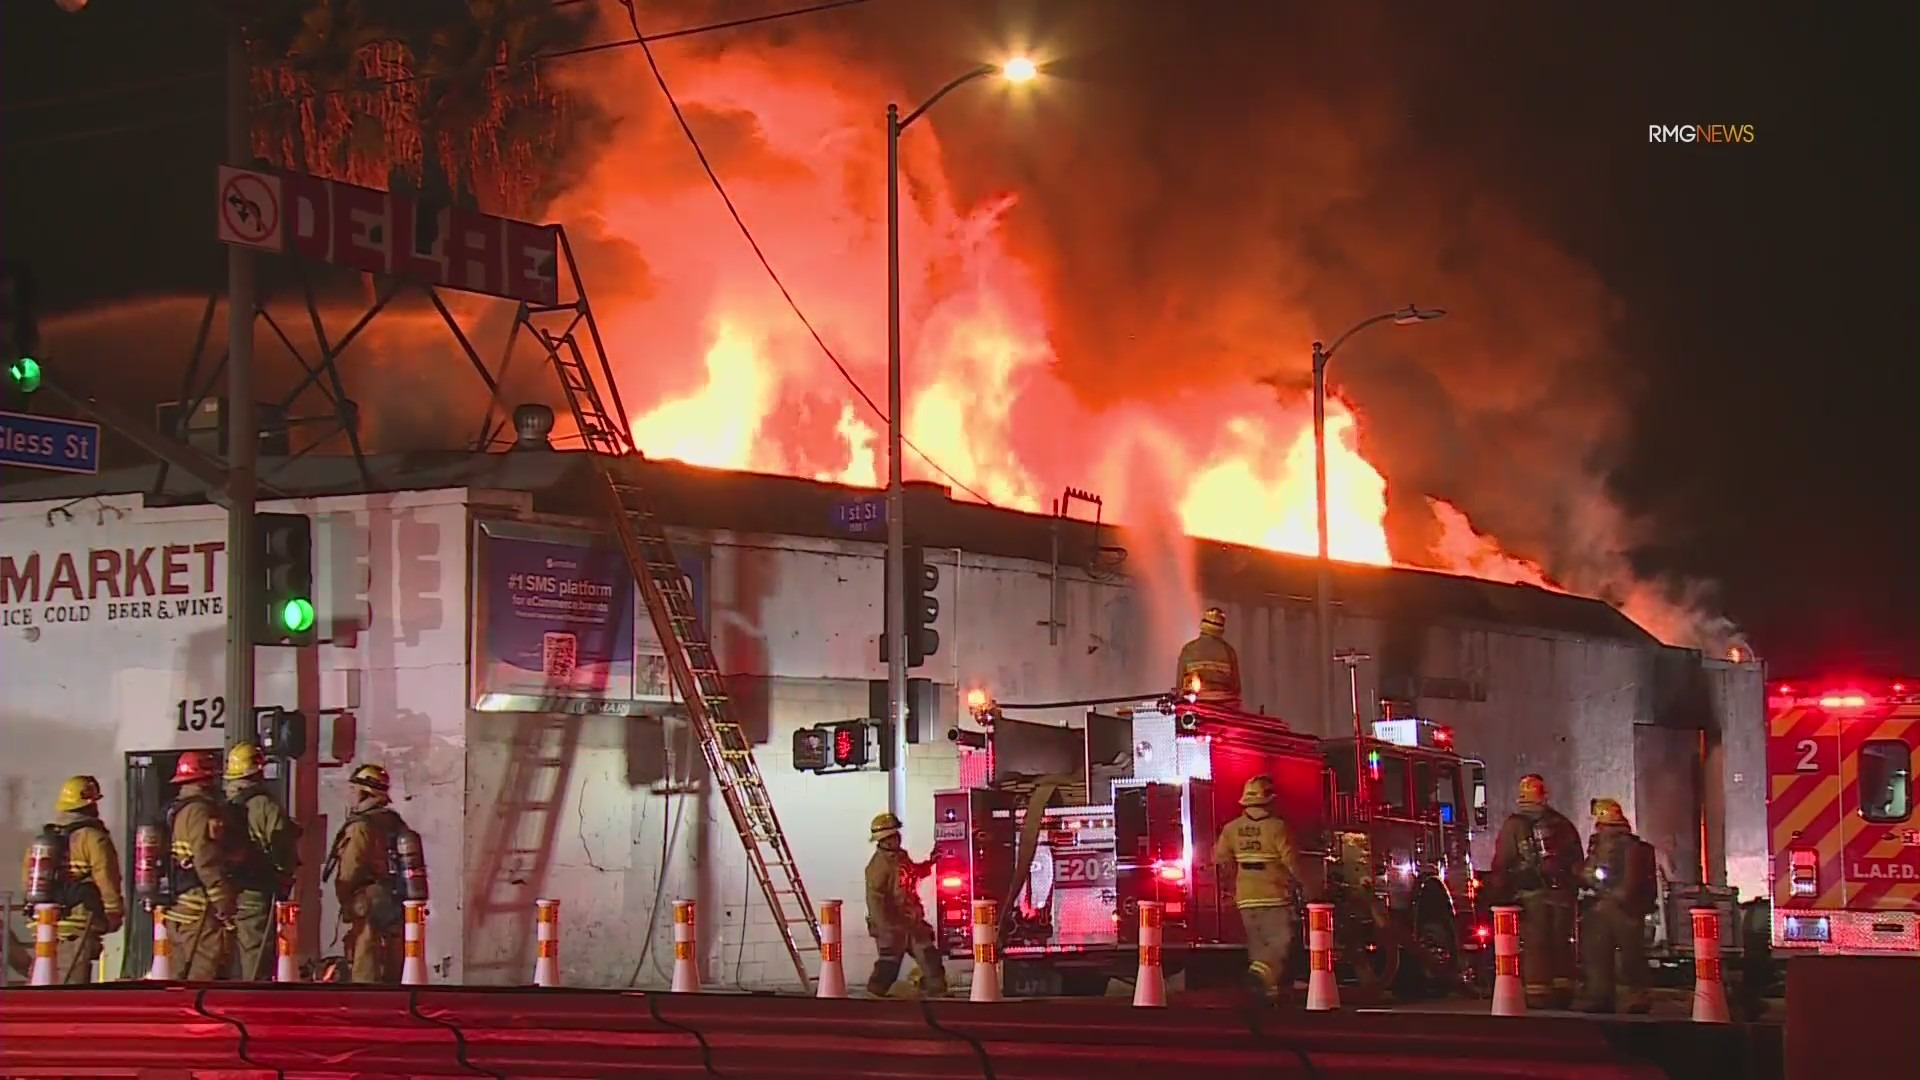 Firefighters respond to a structure fire in Boyle Heights on Sept. 28, 2021. (RMG News)